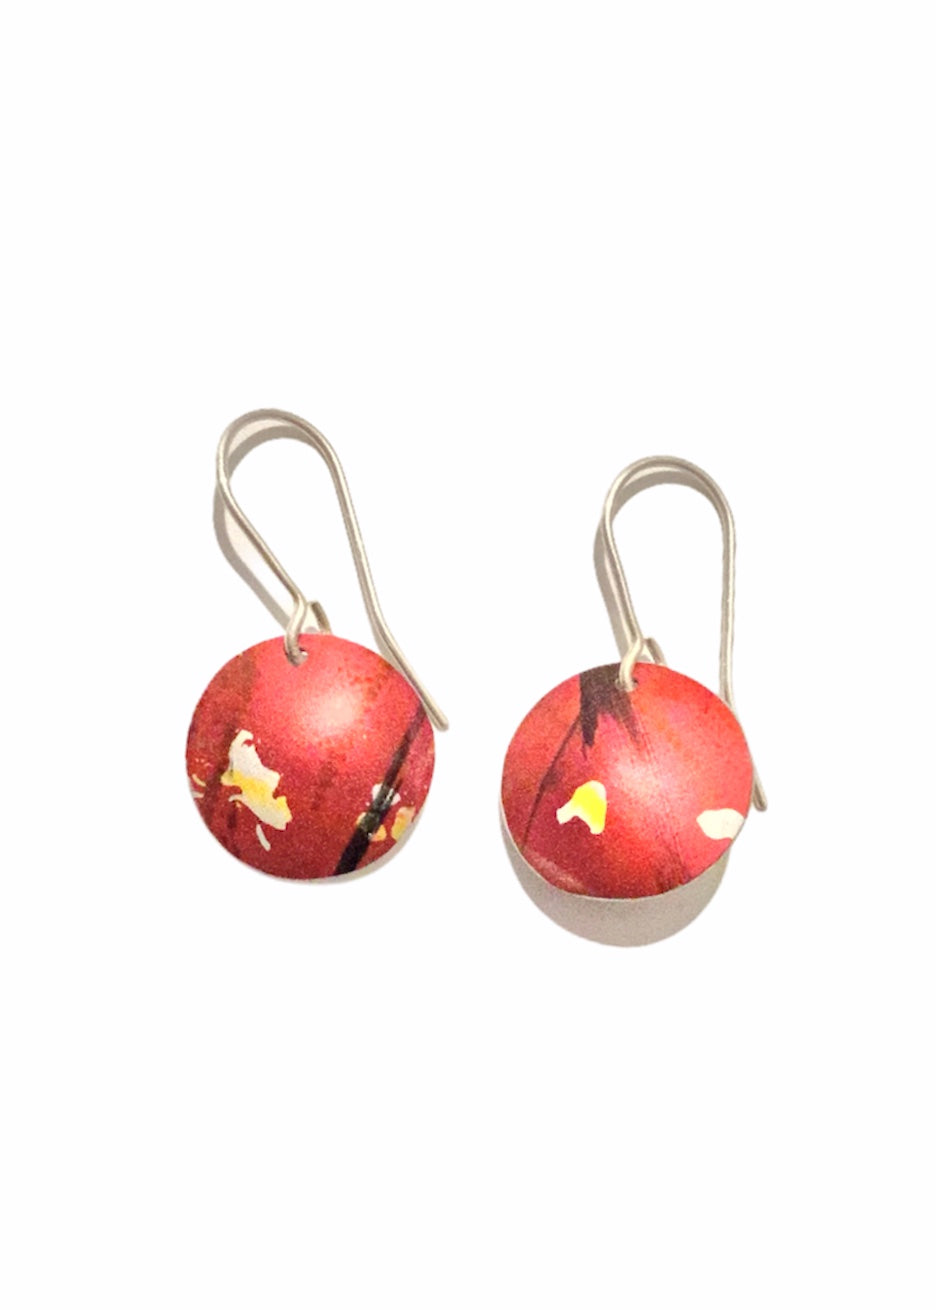 Rachel Stowe - Handprinted Disk Earrings in Reds